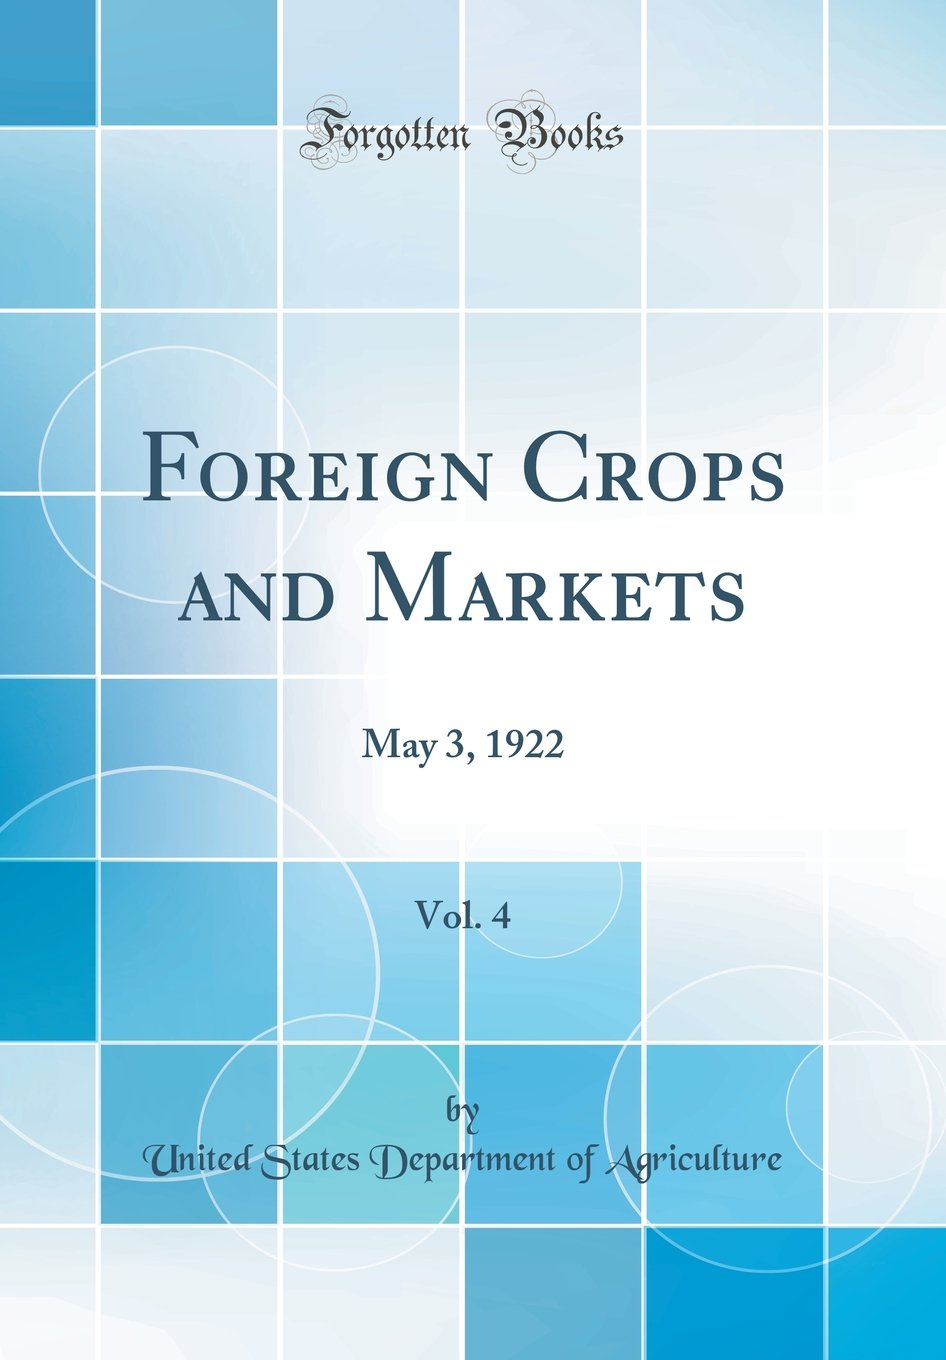 Foreign Crops and Markets, Vol. 4: May 3, 1922 (Classic Reprint) ebook